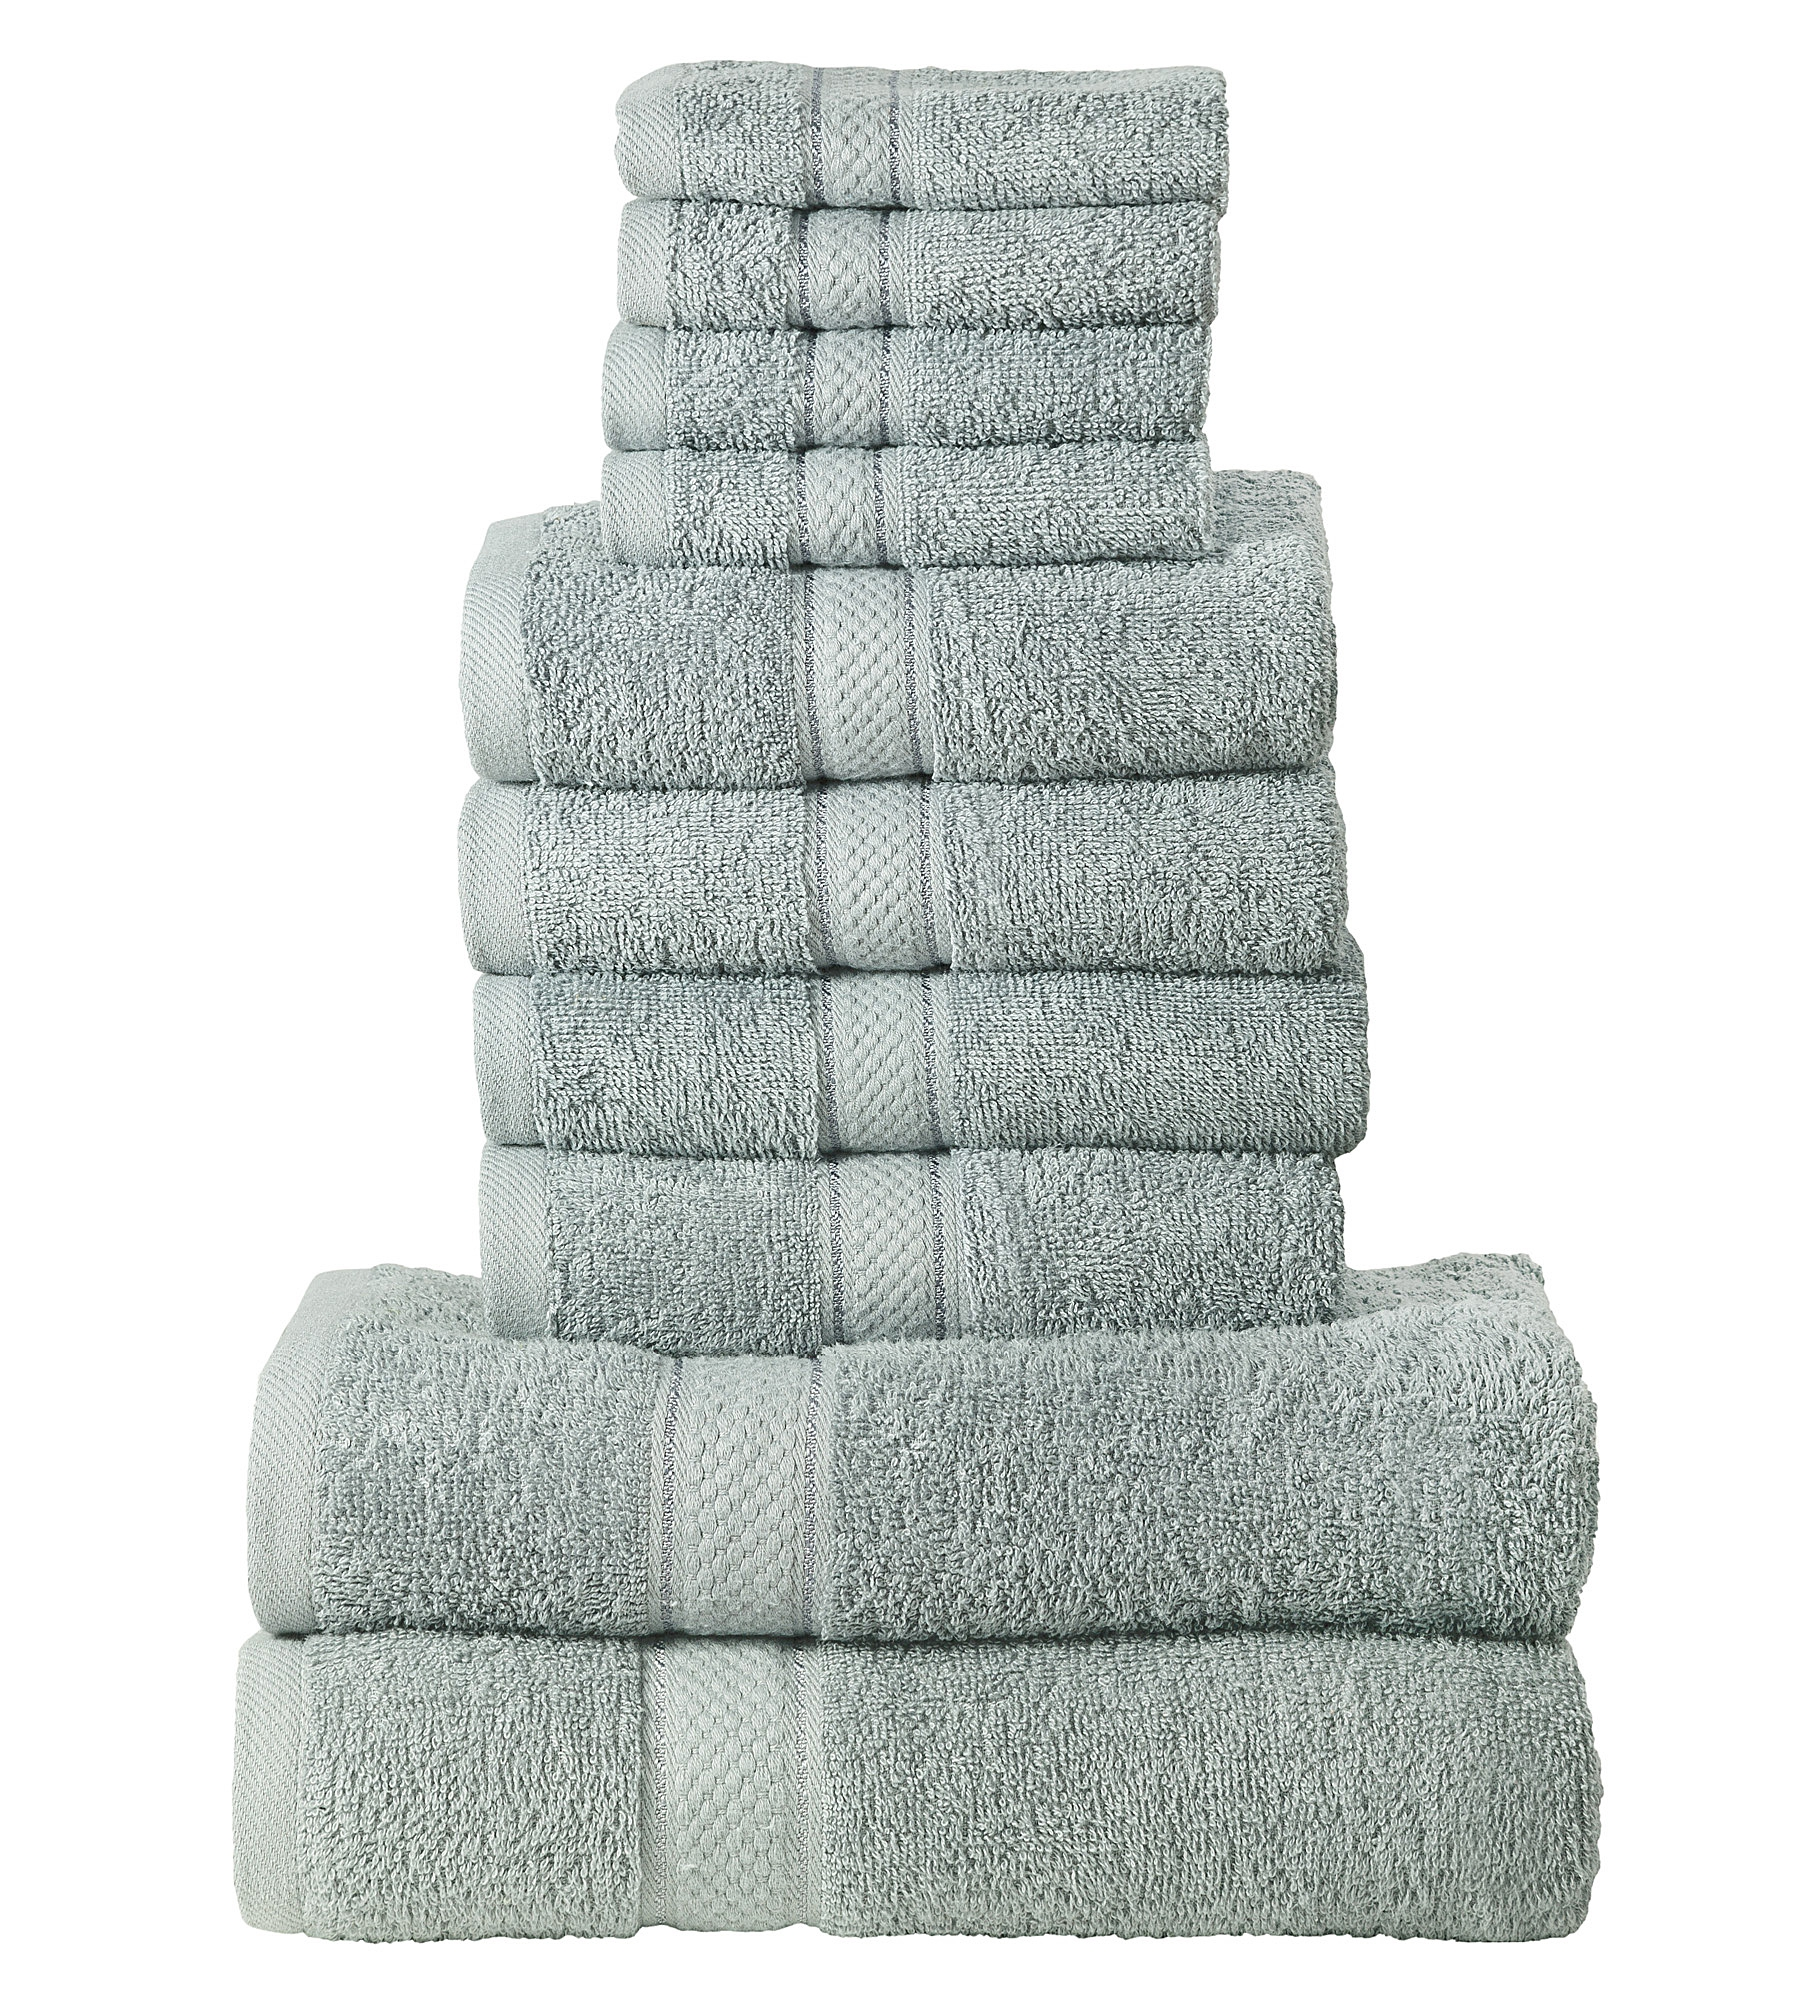 10 Pcs 100% Cotton Silver Premium Towel Bale Set Plain